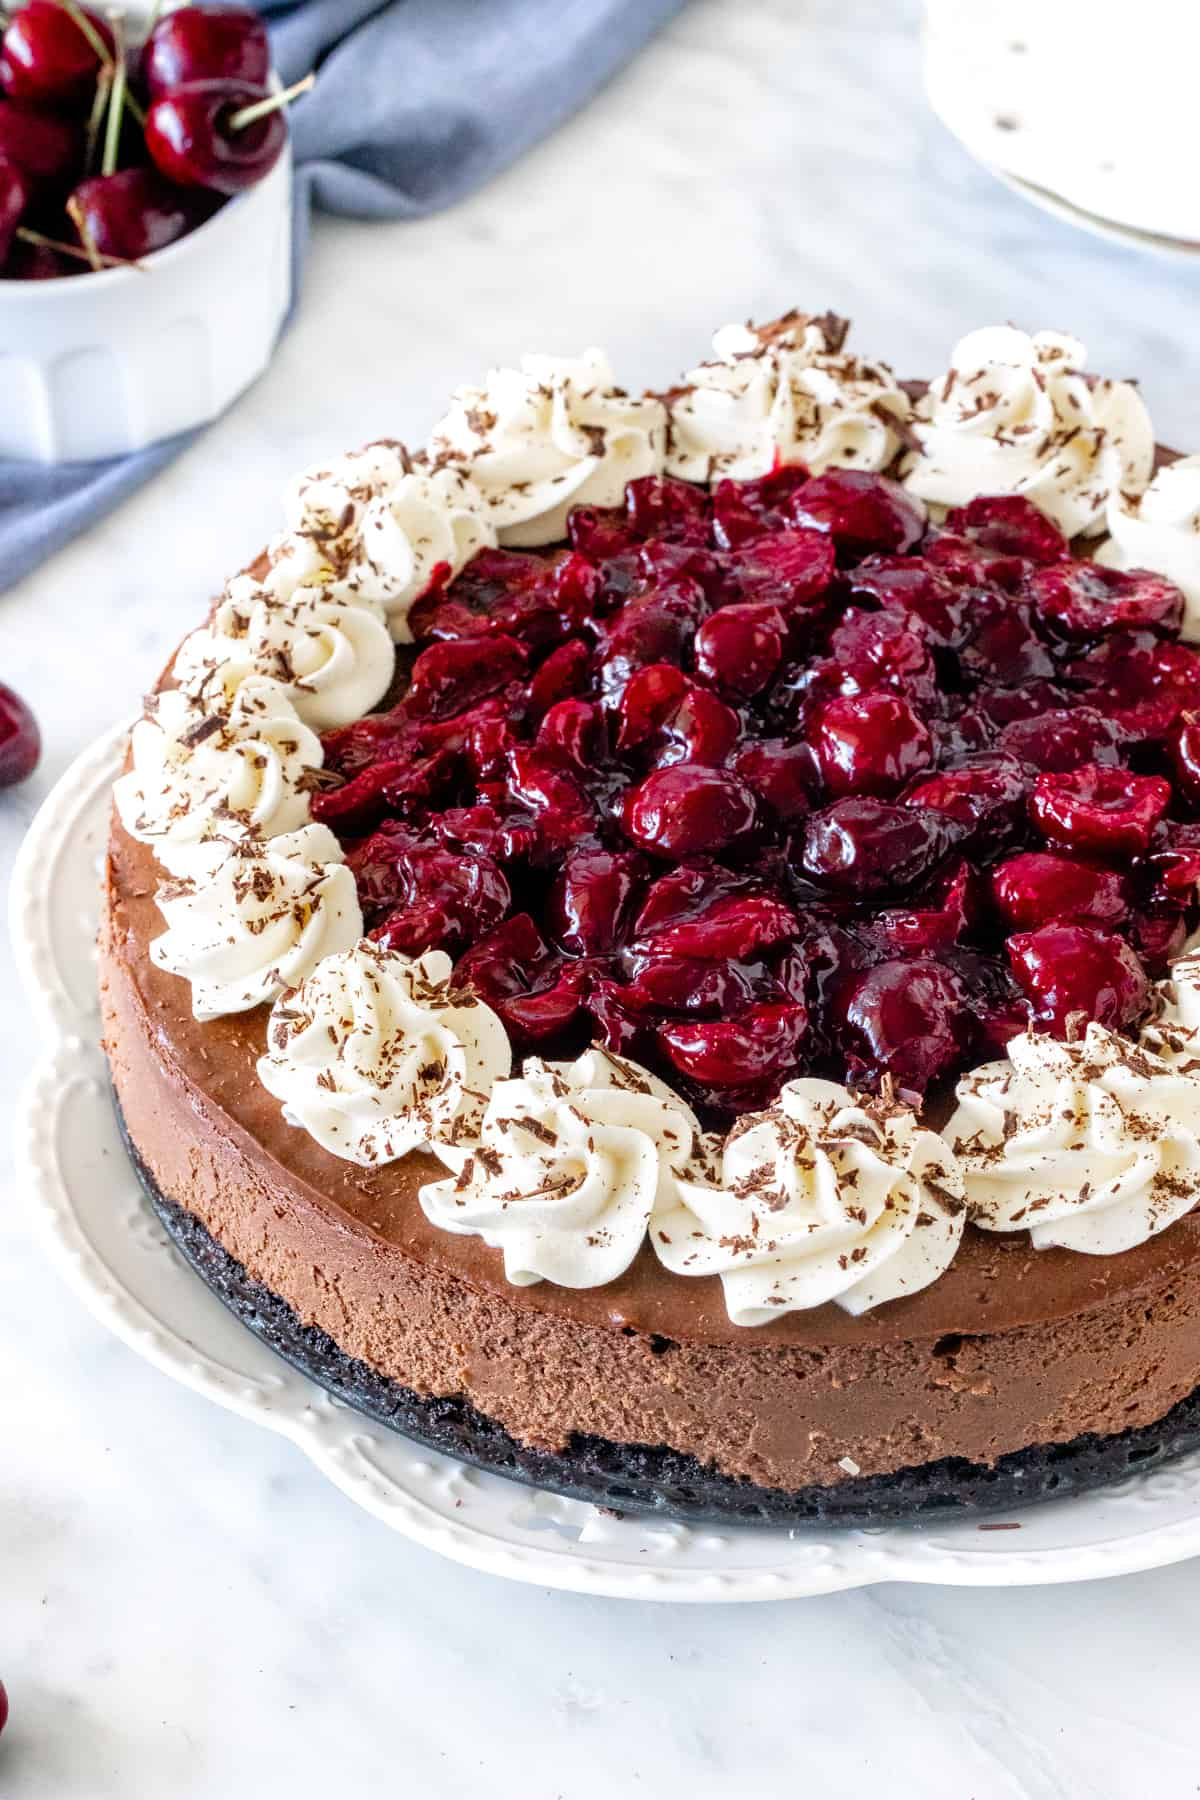 Black forest cheesecake on a plate.